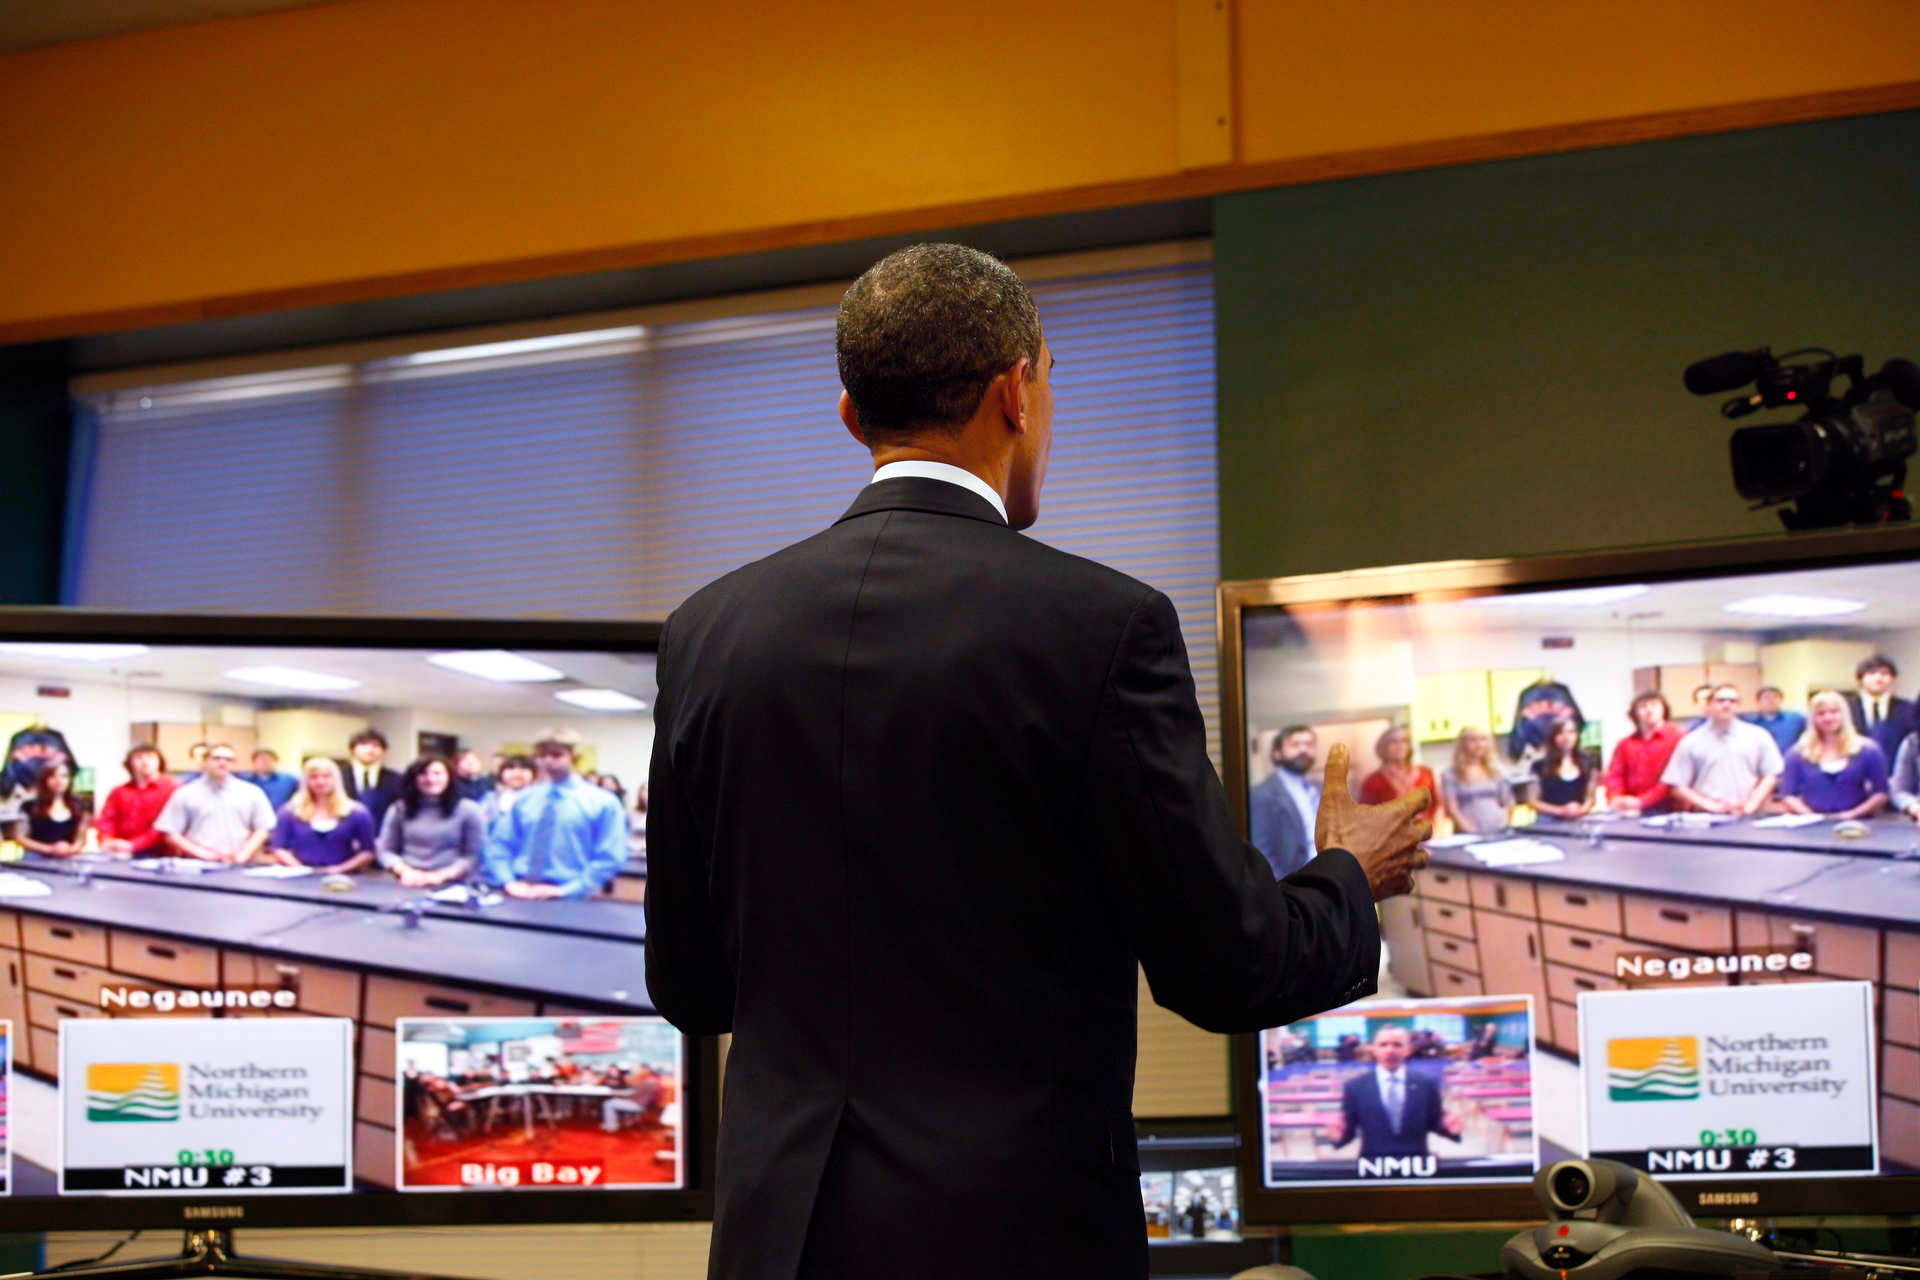 President Obama Teleconferences With Students in Michigan